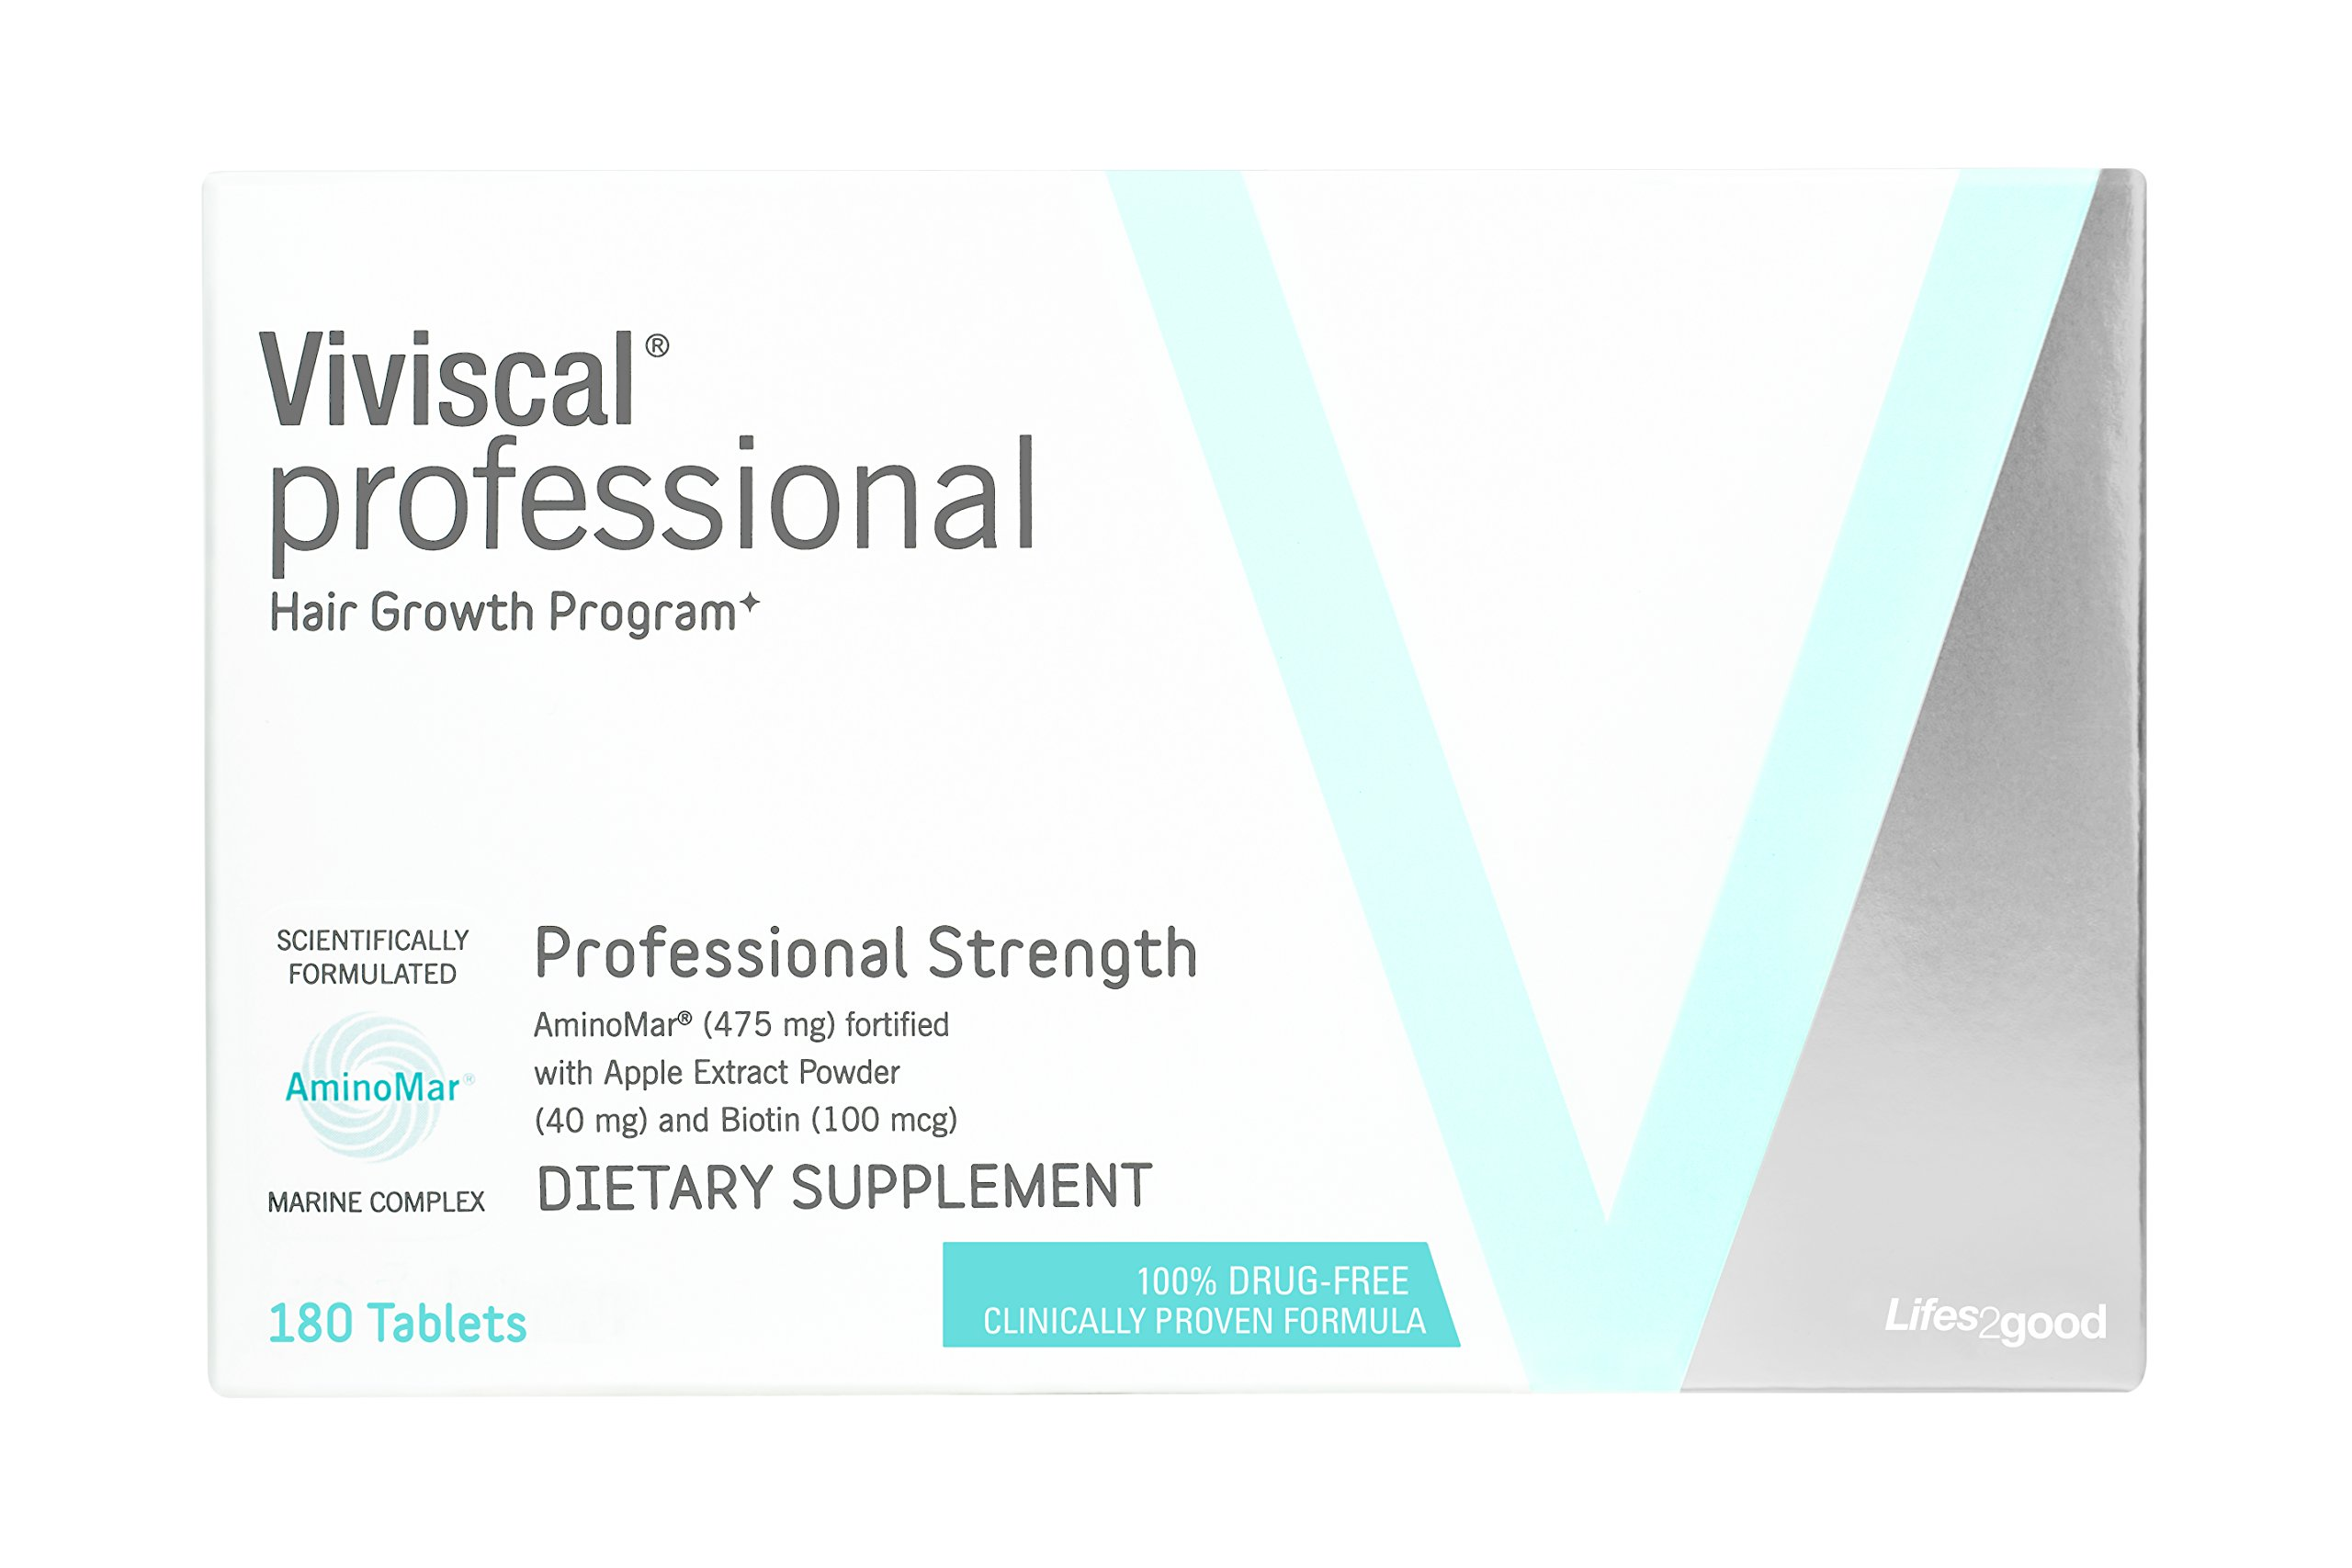 VIVISCAL PROFESSIONAL PRO: Hair Growth Dietary Supplement 180 tablets 90 Day Supply